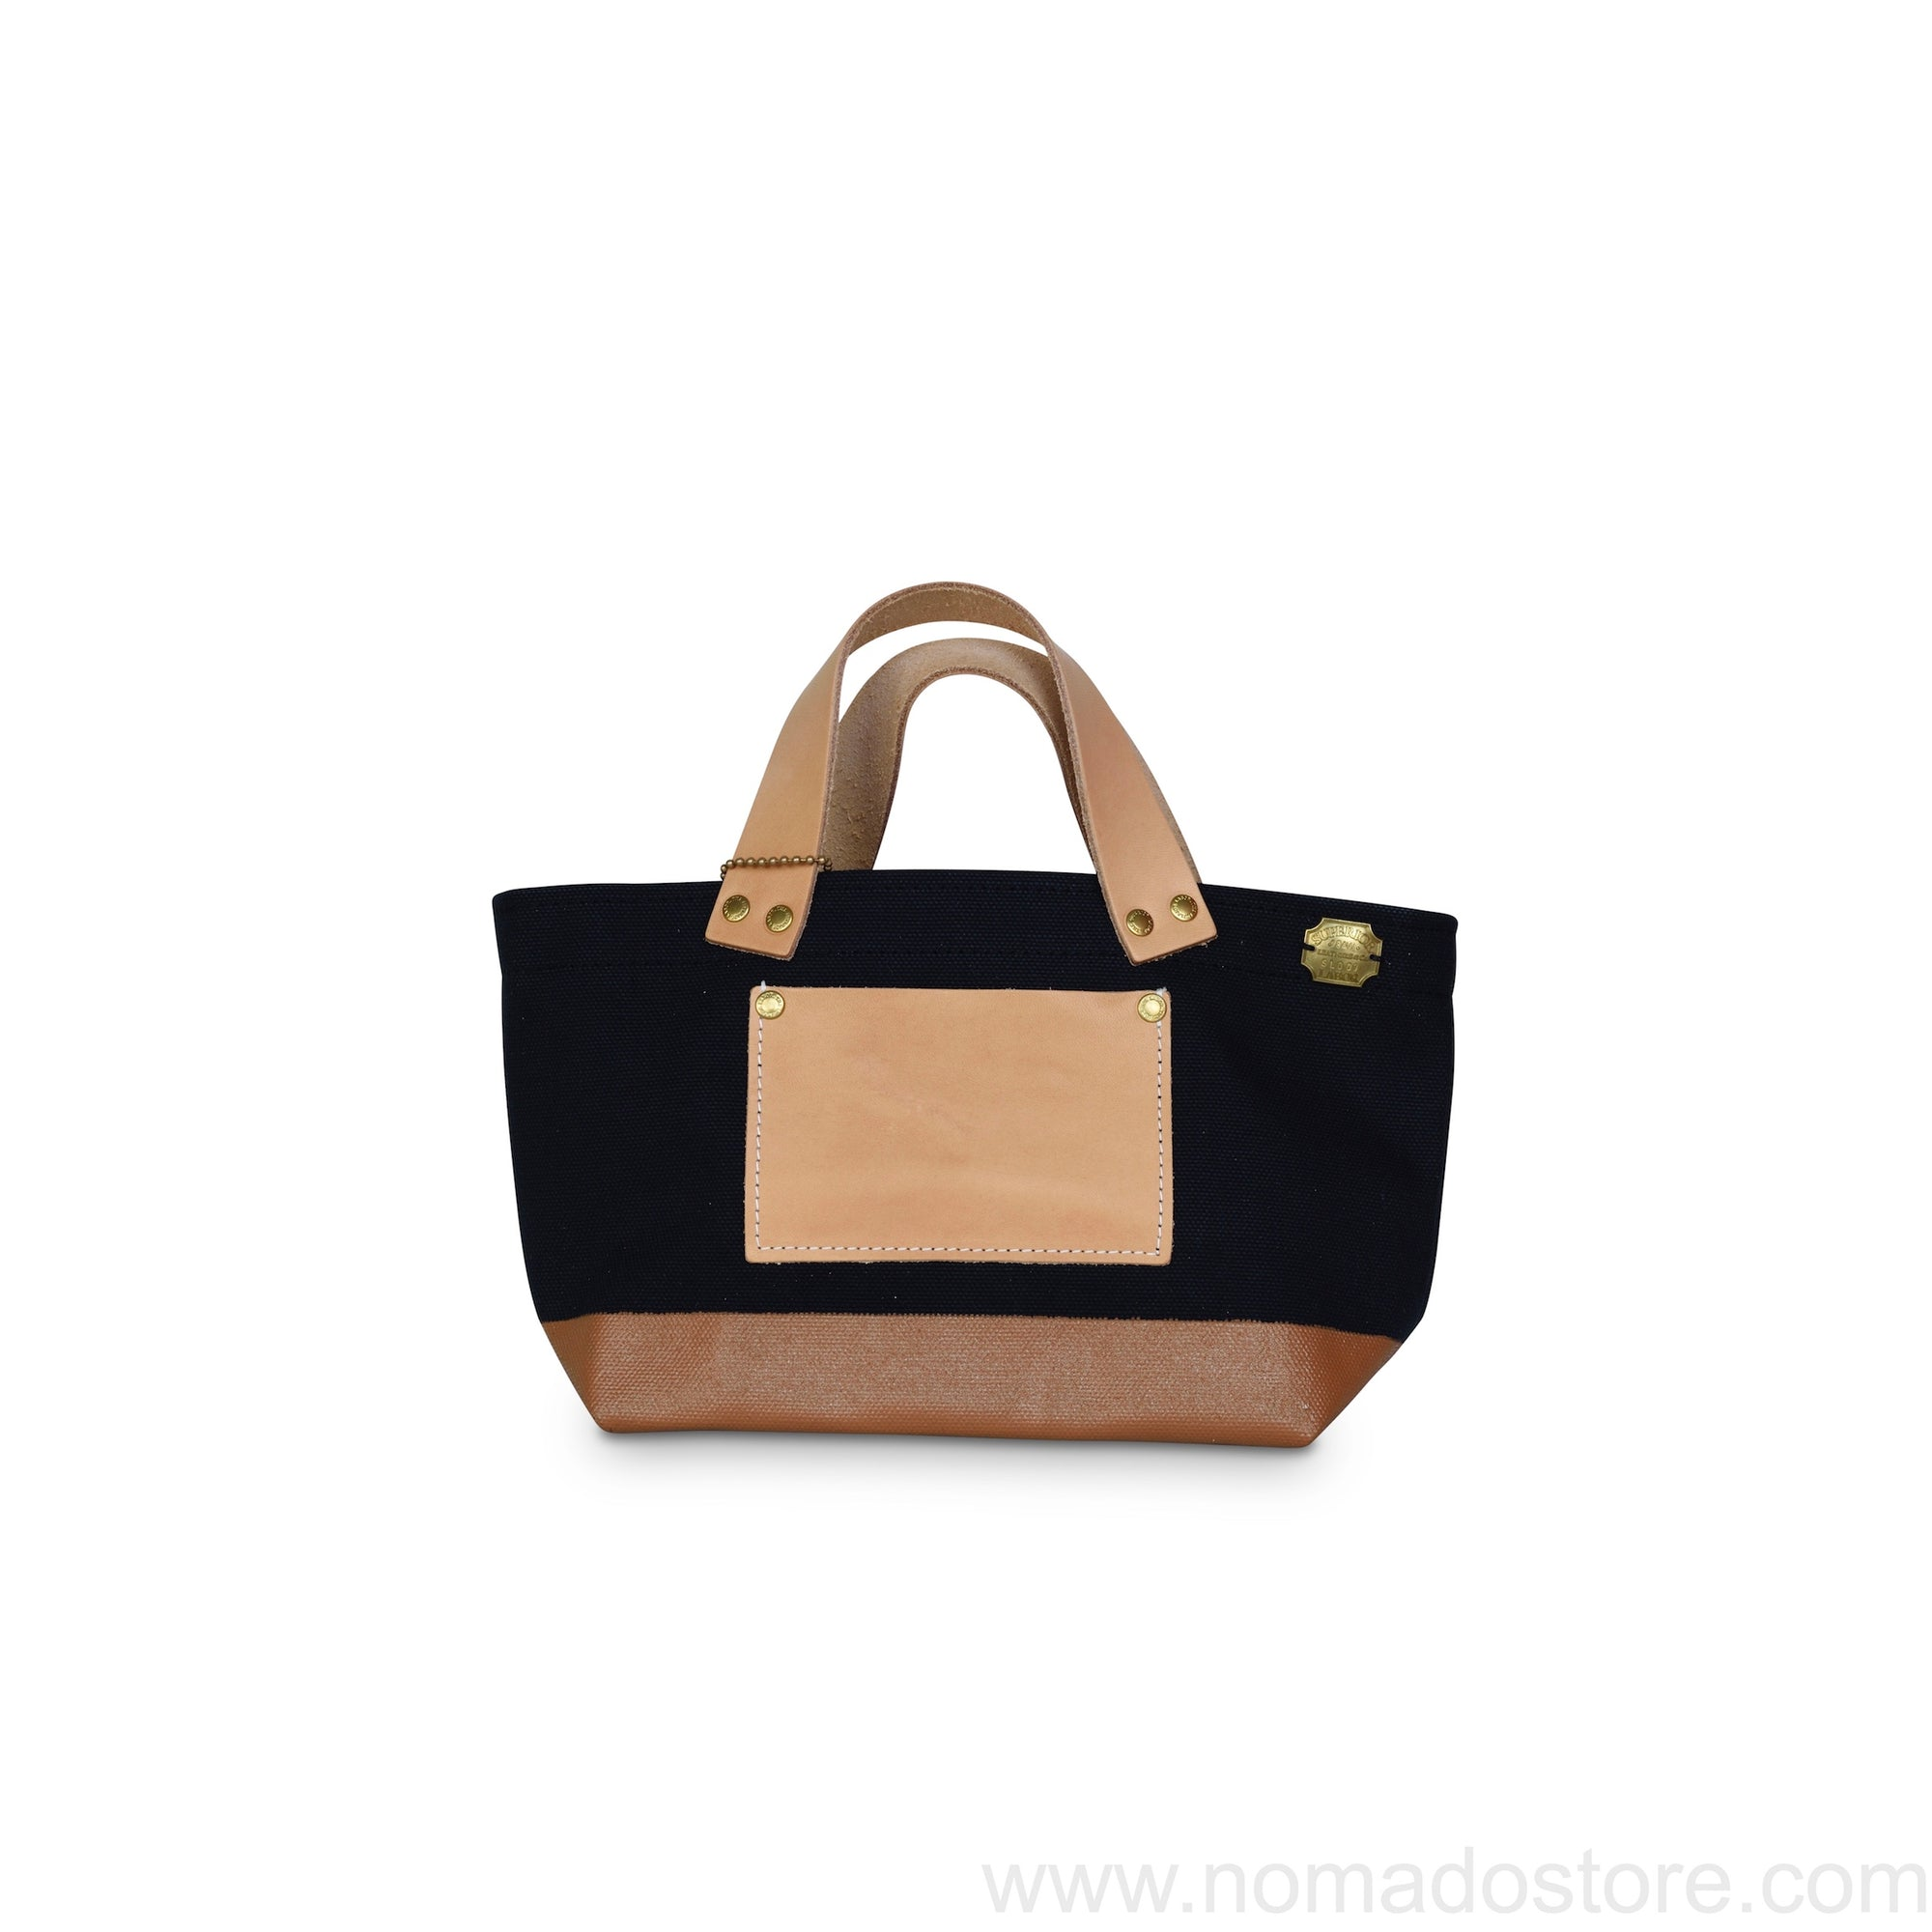 The Superior Labor Engineer Bag Petite Black/Tan Paint/natural leather - NOMADO Store